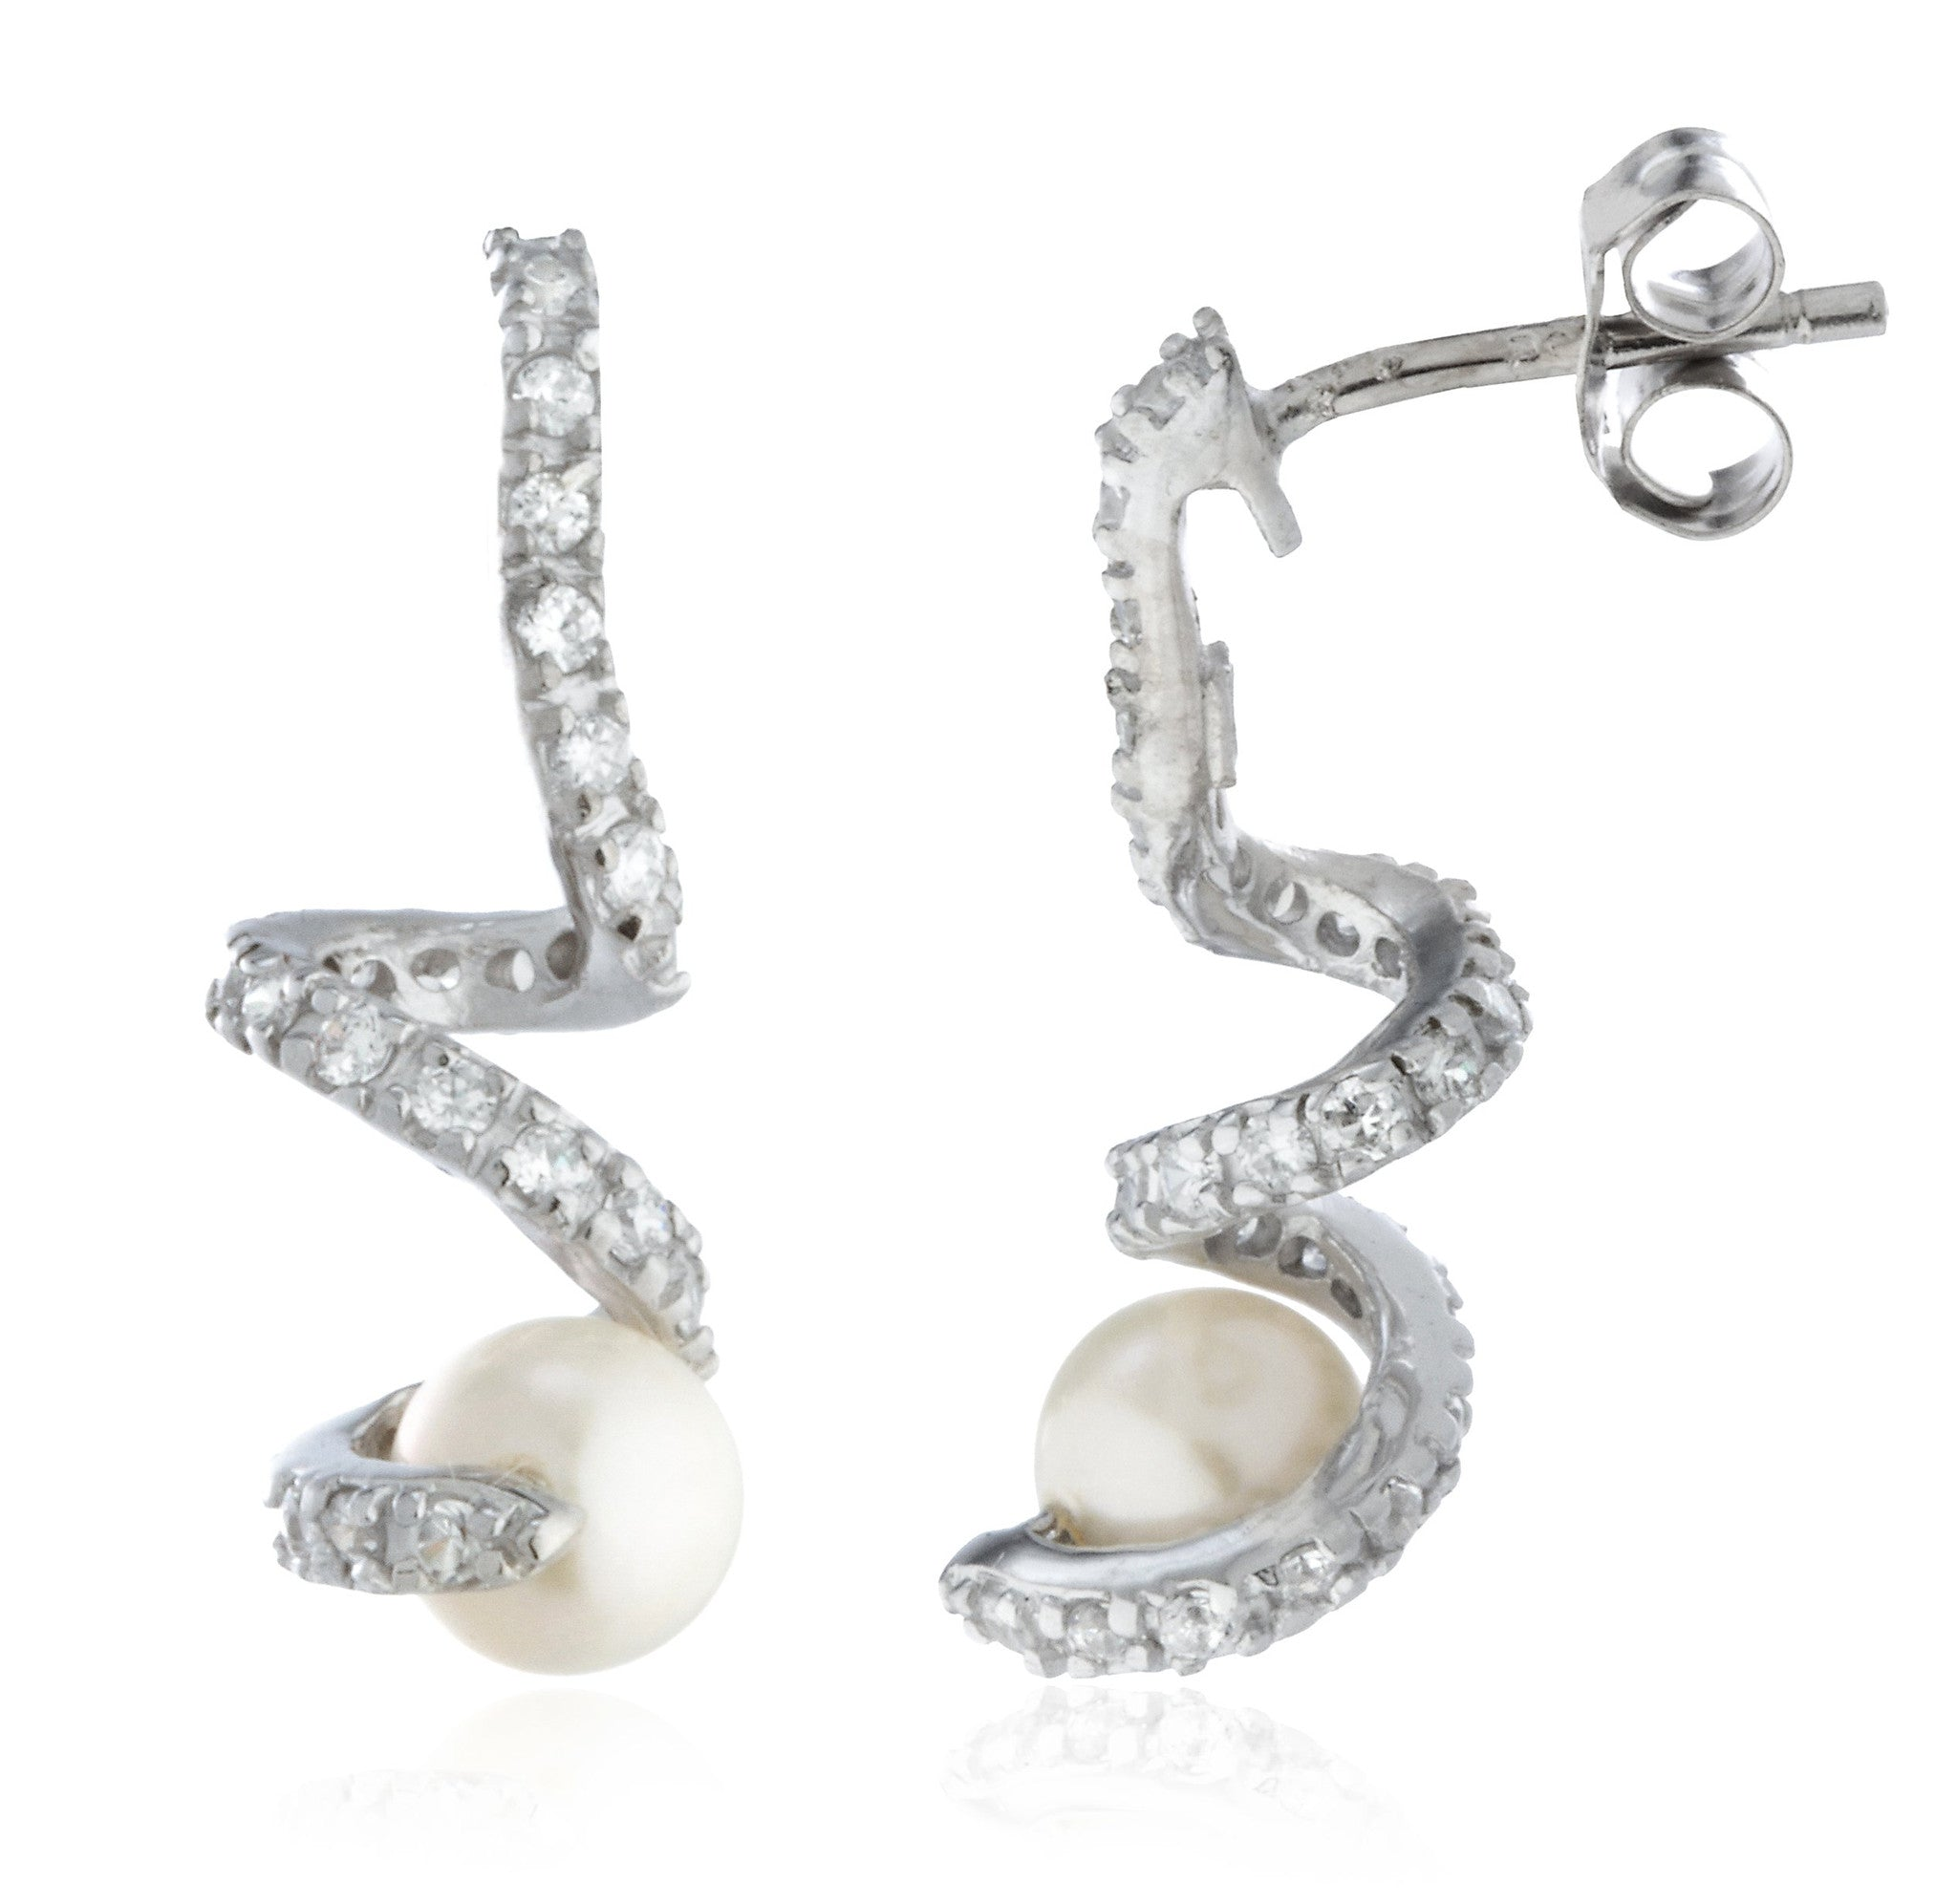 earrings ko pearl gemstone the stud jewerly jewellery mauktika shop silver collections real online timeless classic sia